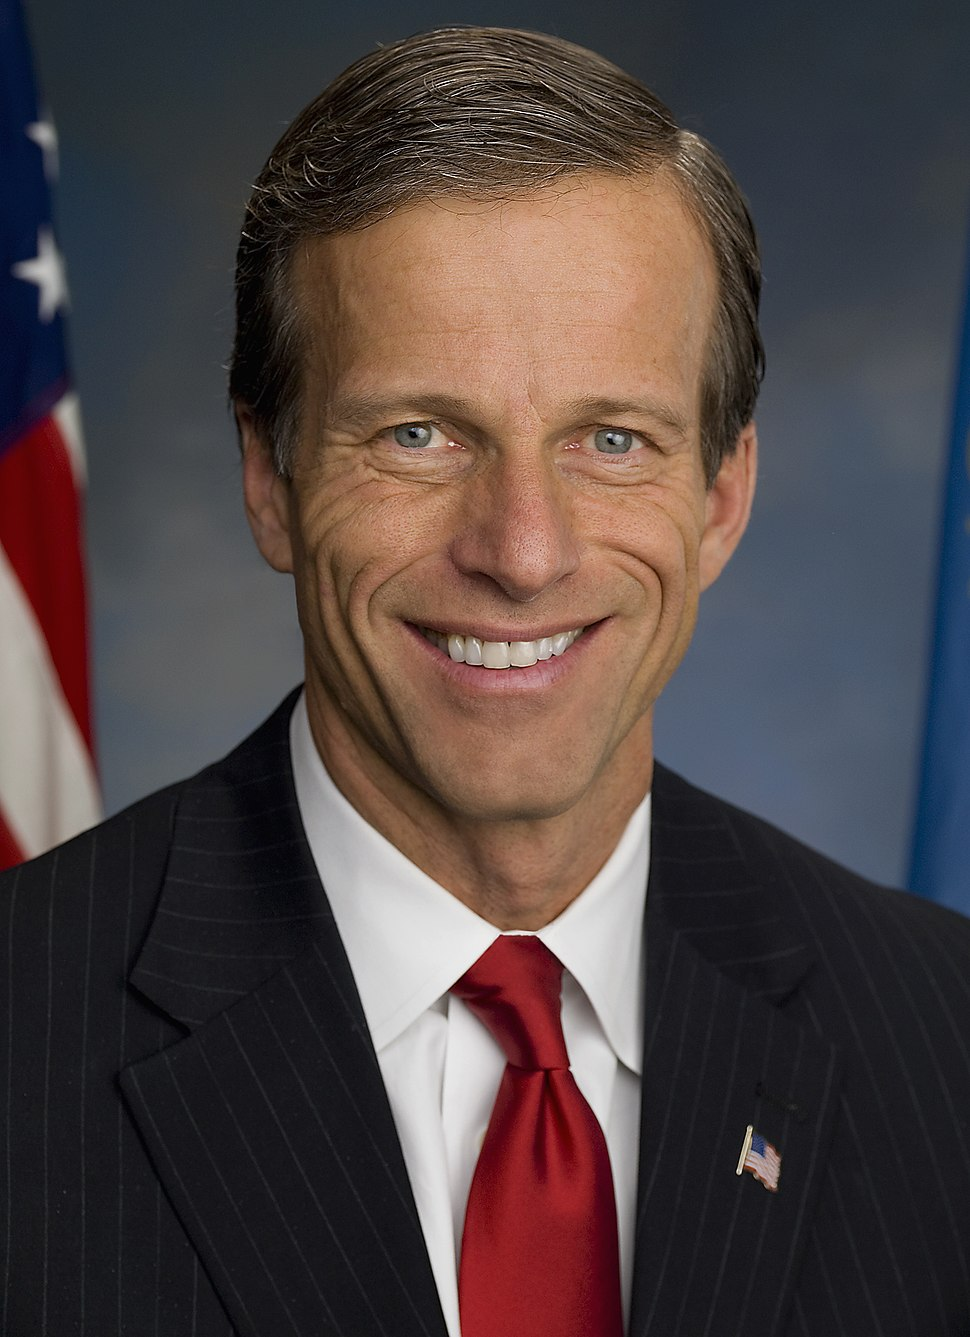 John Thune, official portrait, 111th Congress (cropped1)